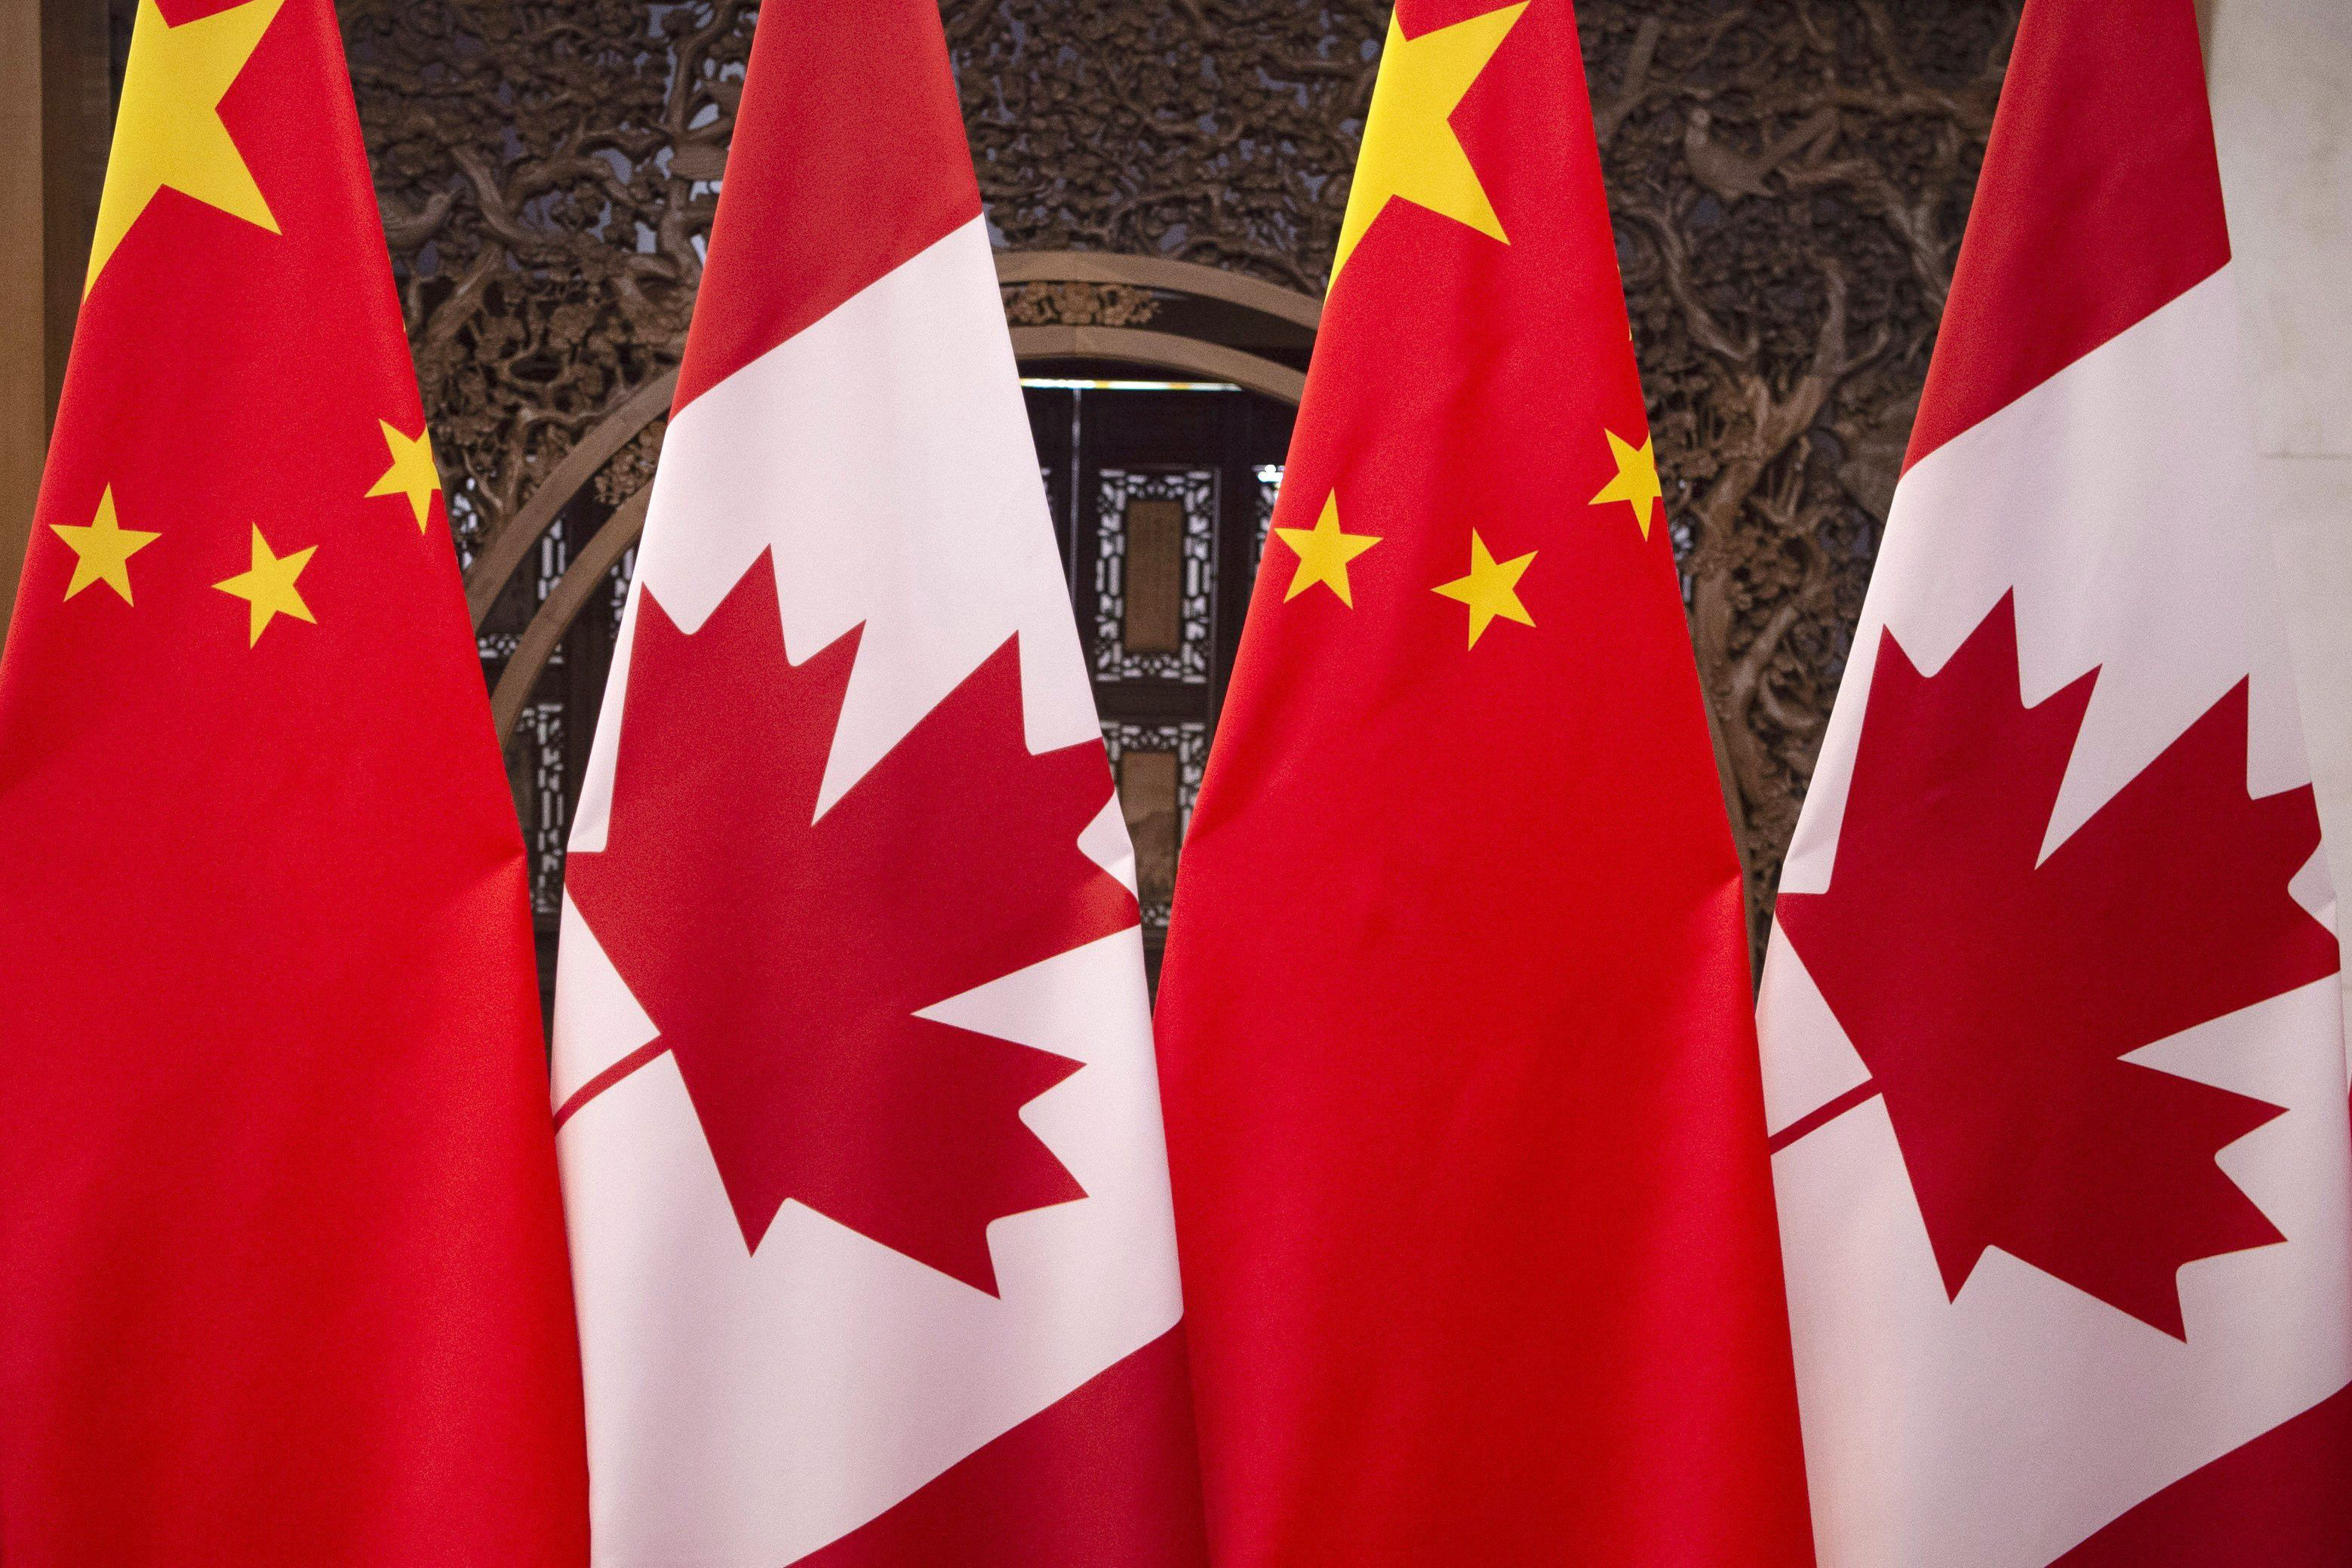 China says relationship with Canada suffering 'gross difficulties,' demands Meng Wanzhou be released